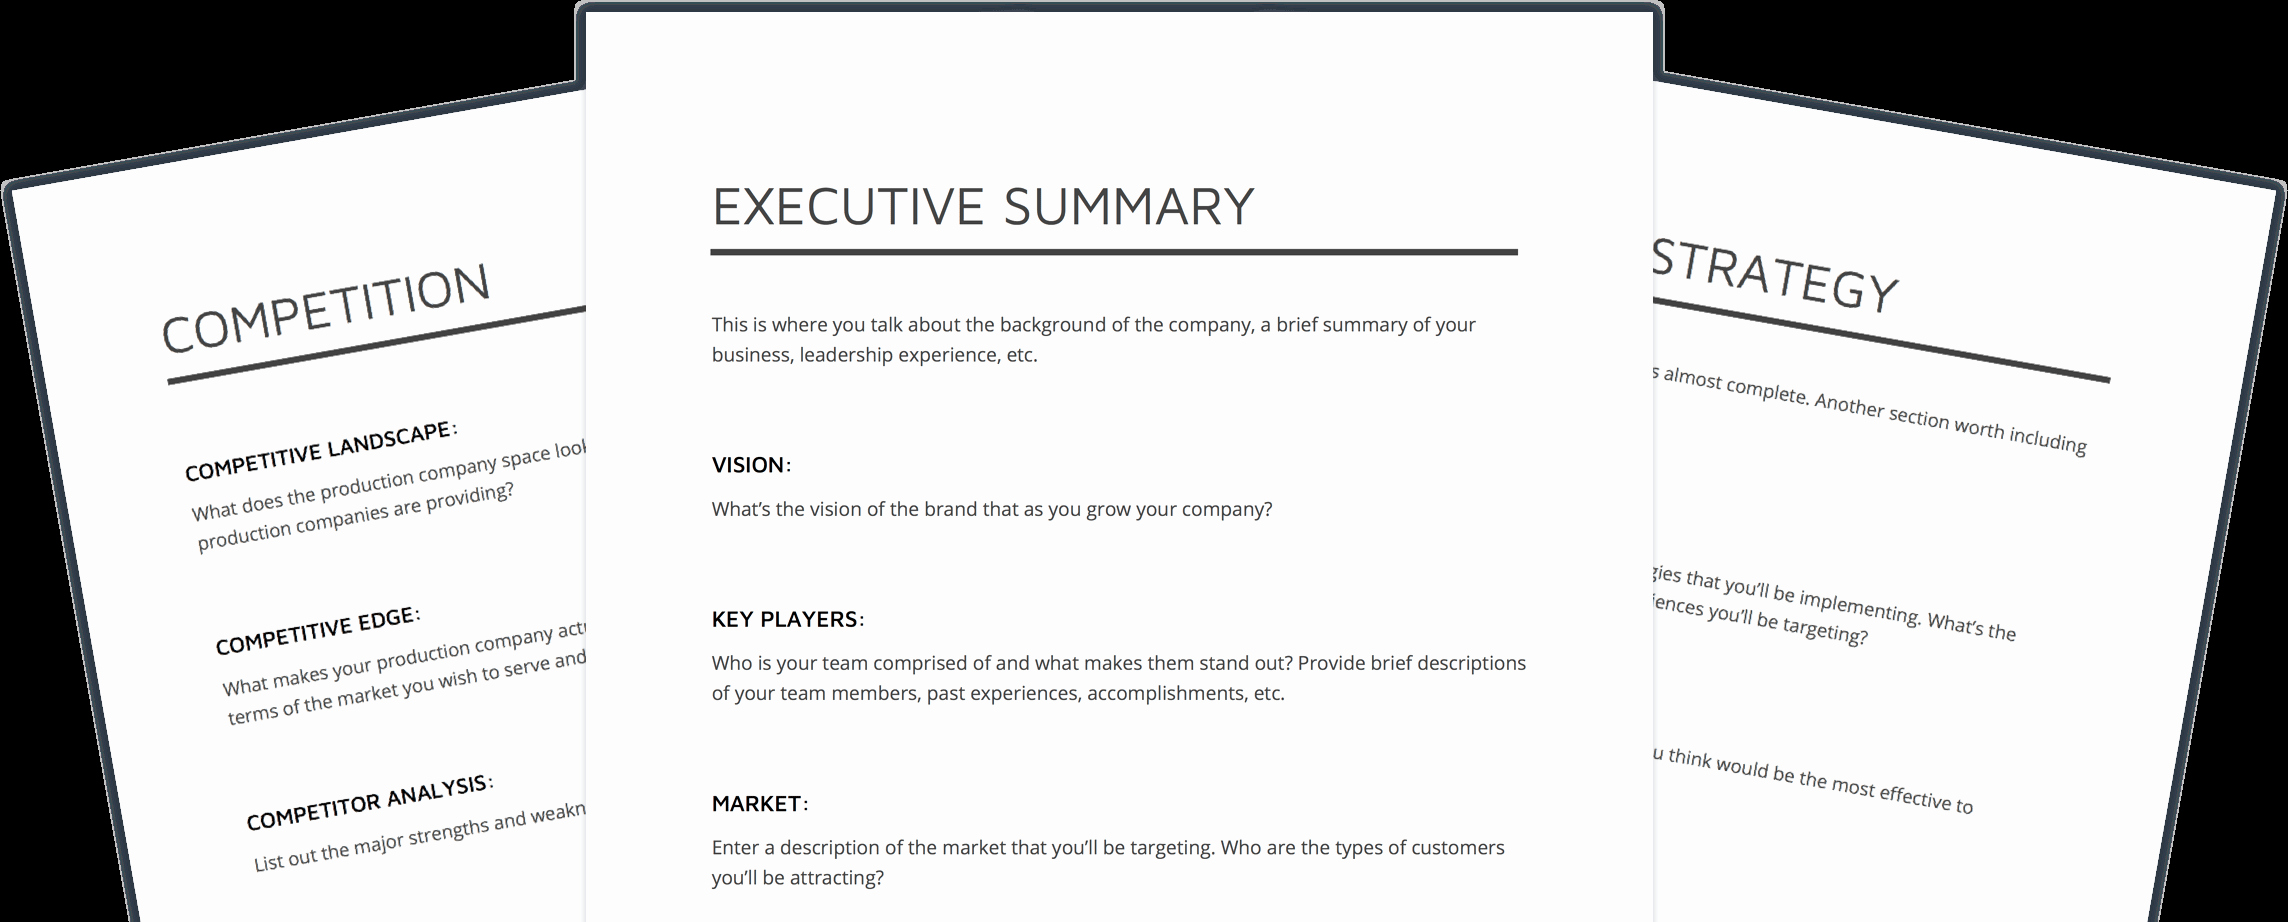 Video Production Plan Template Luxury How to Make A Production Pany Business Plan [free Template]